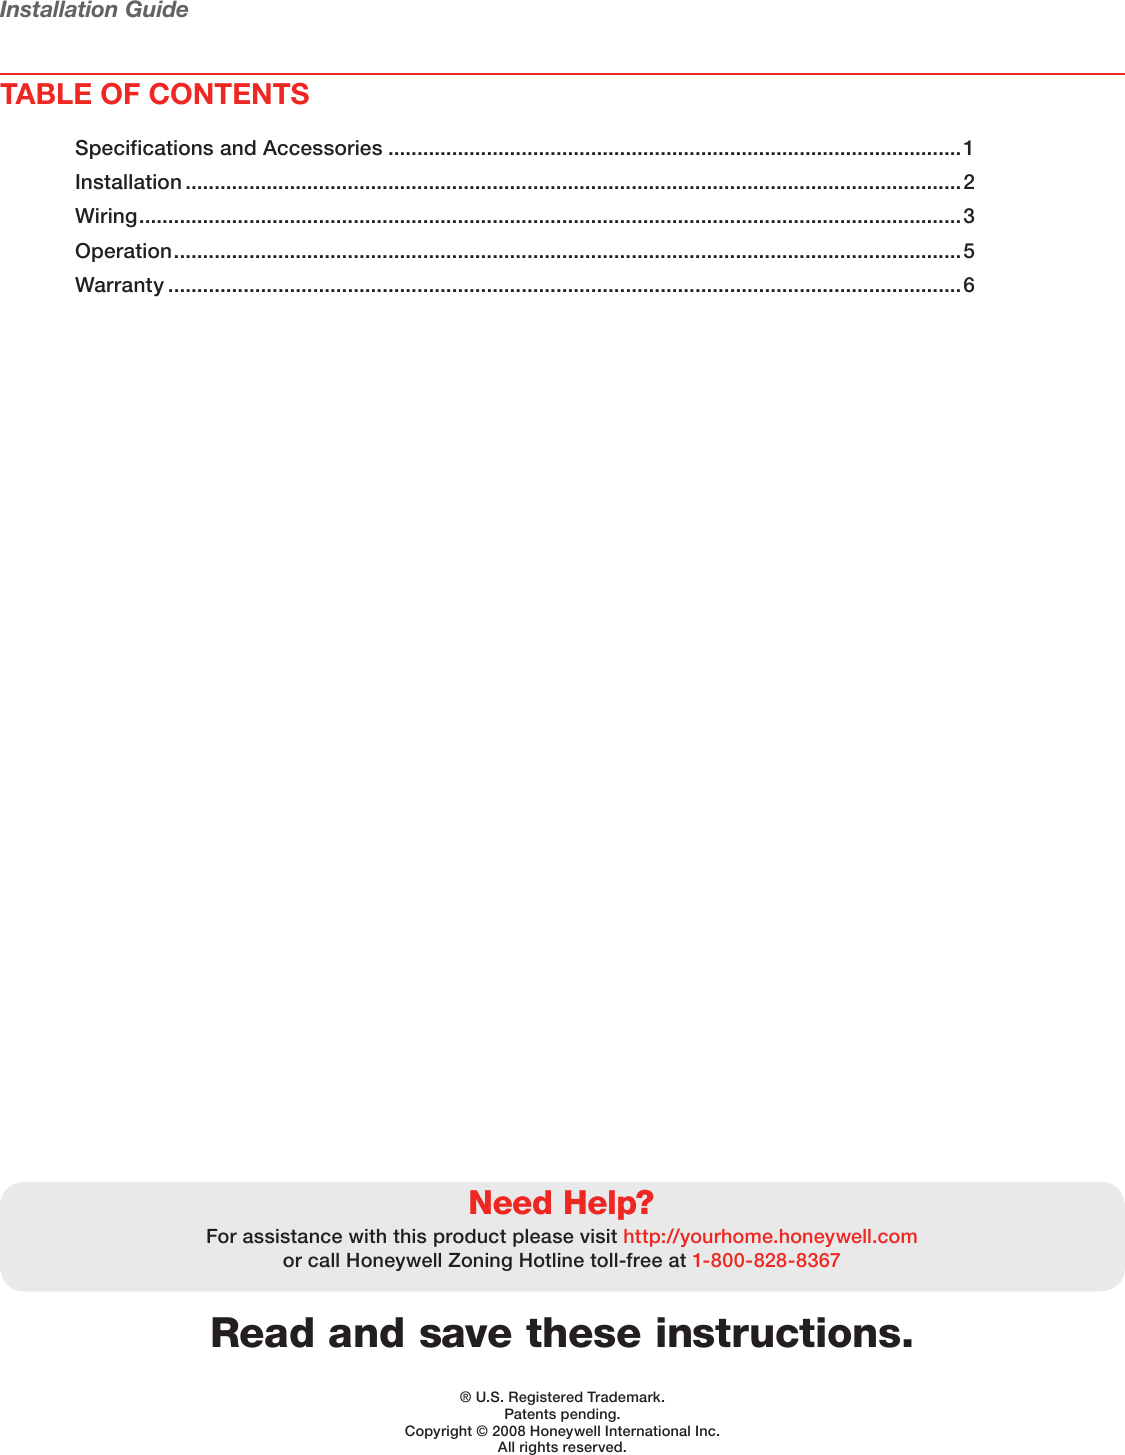 Honeywell Thermostat Hz221 Users Manual 69 2200 01 Truezone Wiring Guide Page 2 Of 8